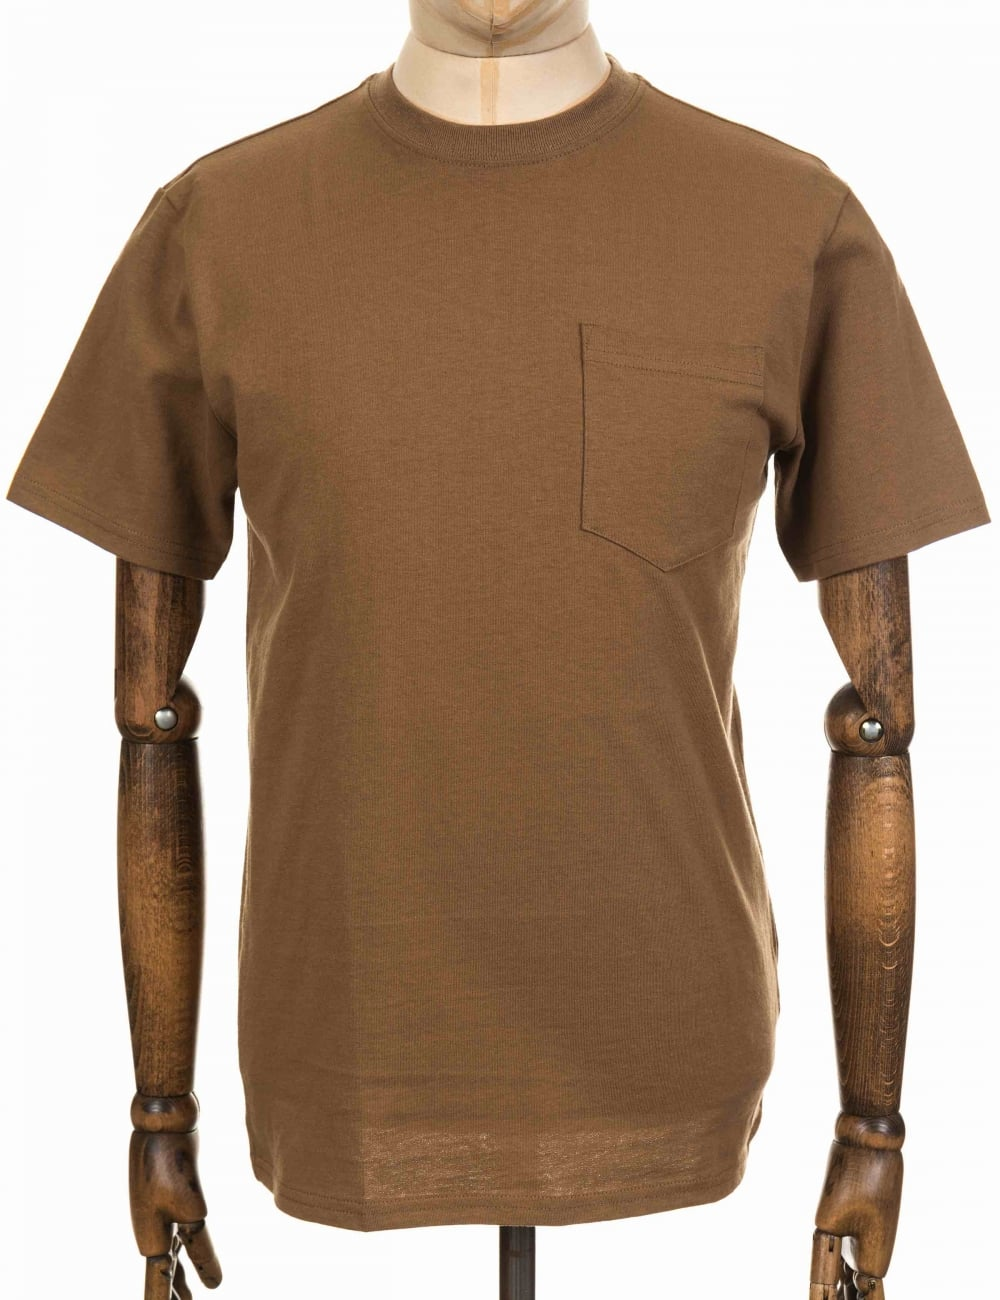 S Outer One Pocket Tee Rugged Tan